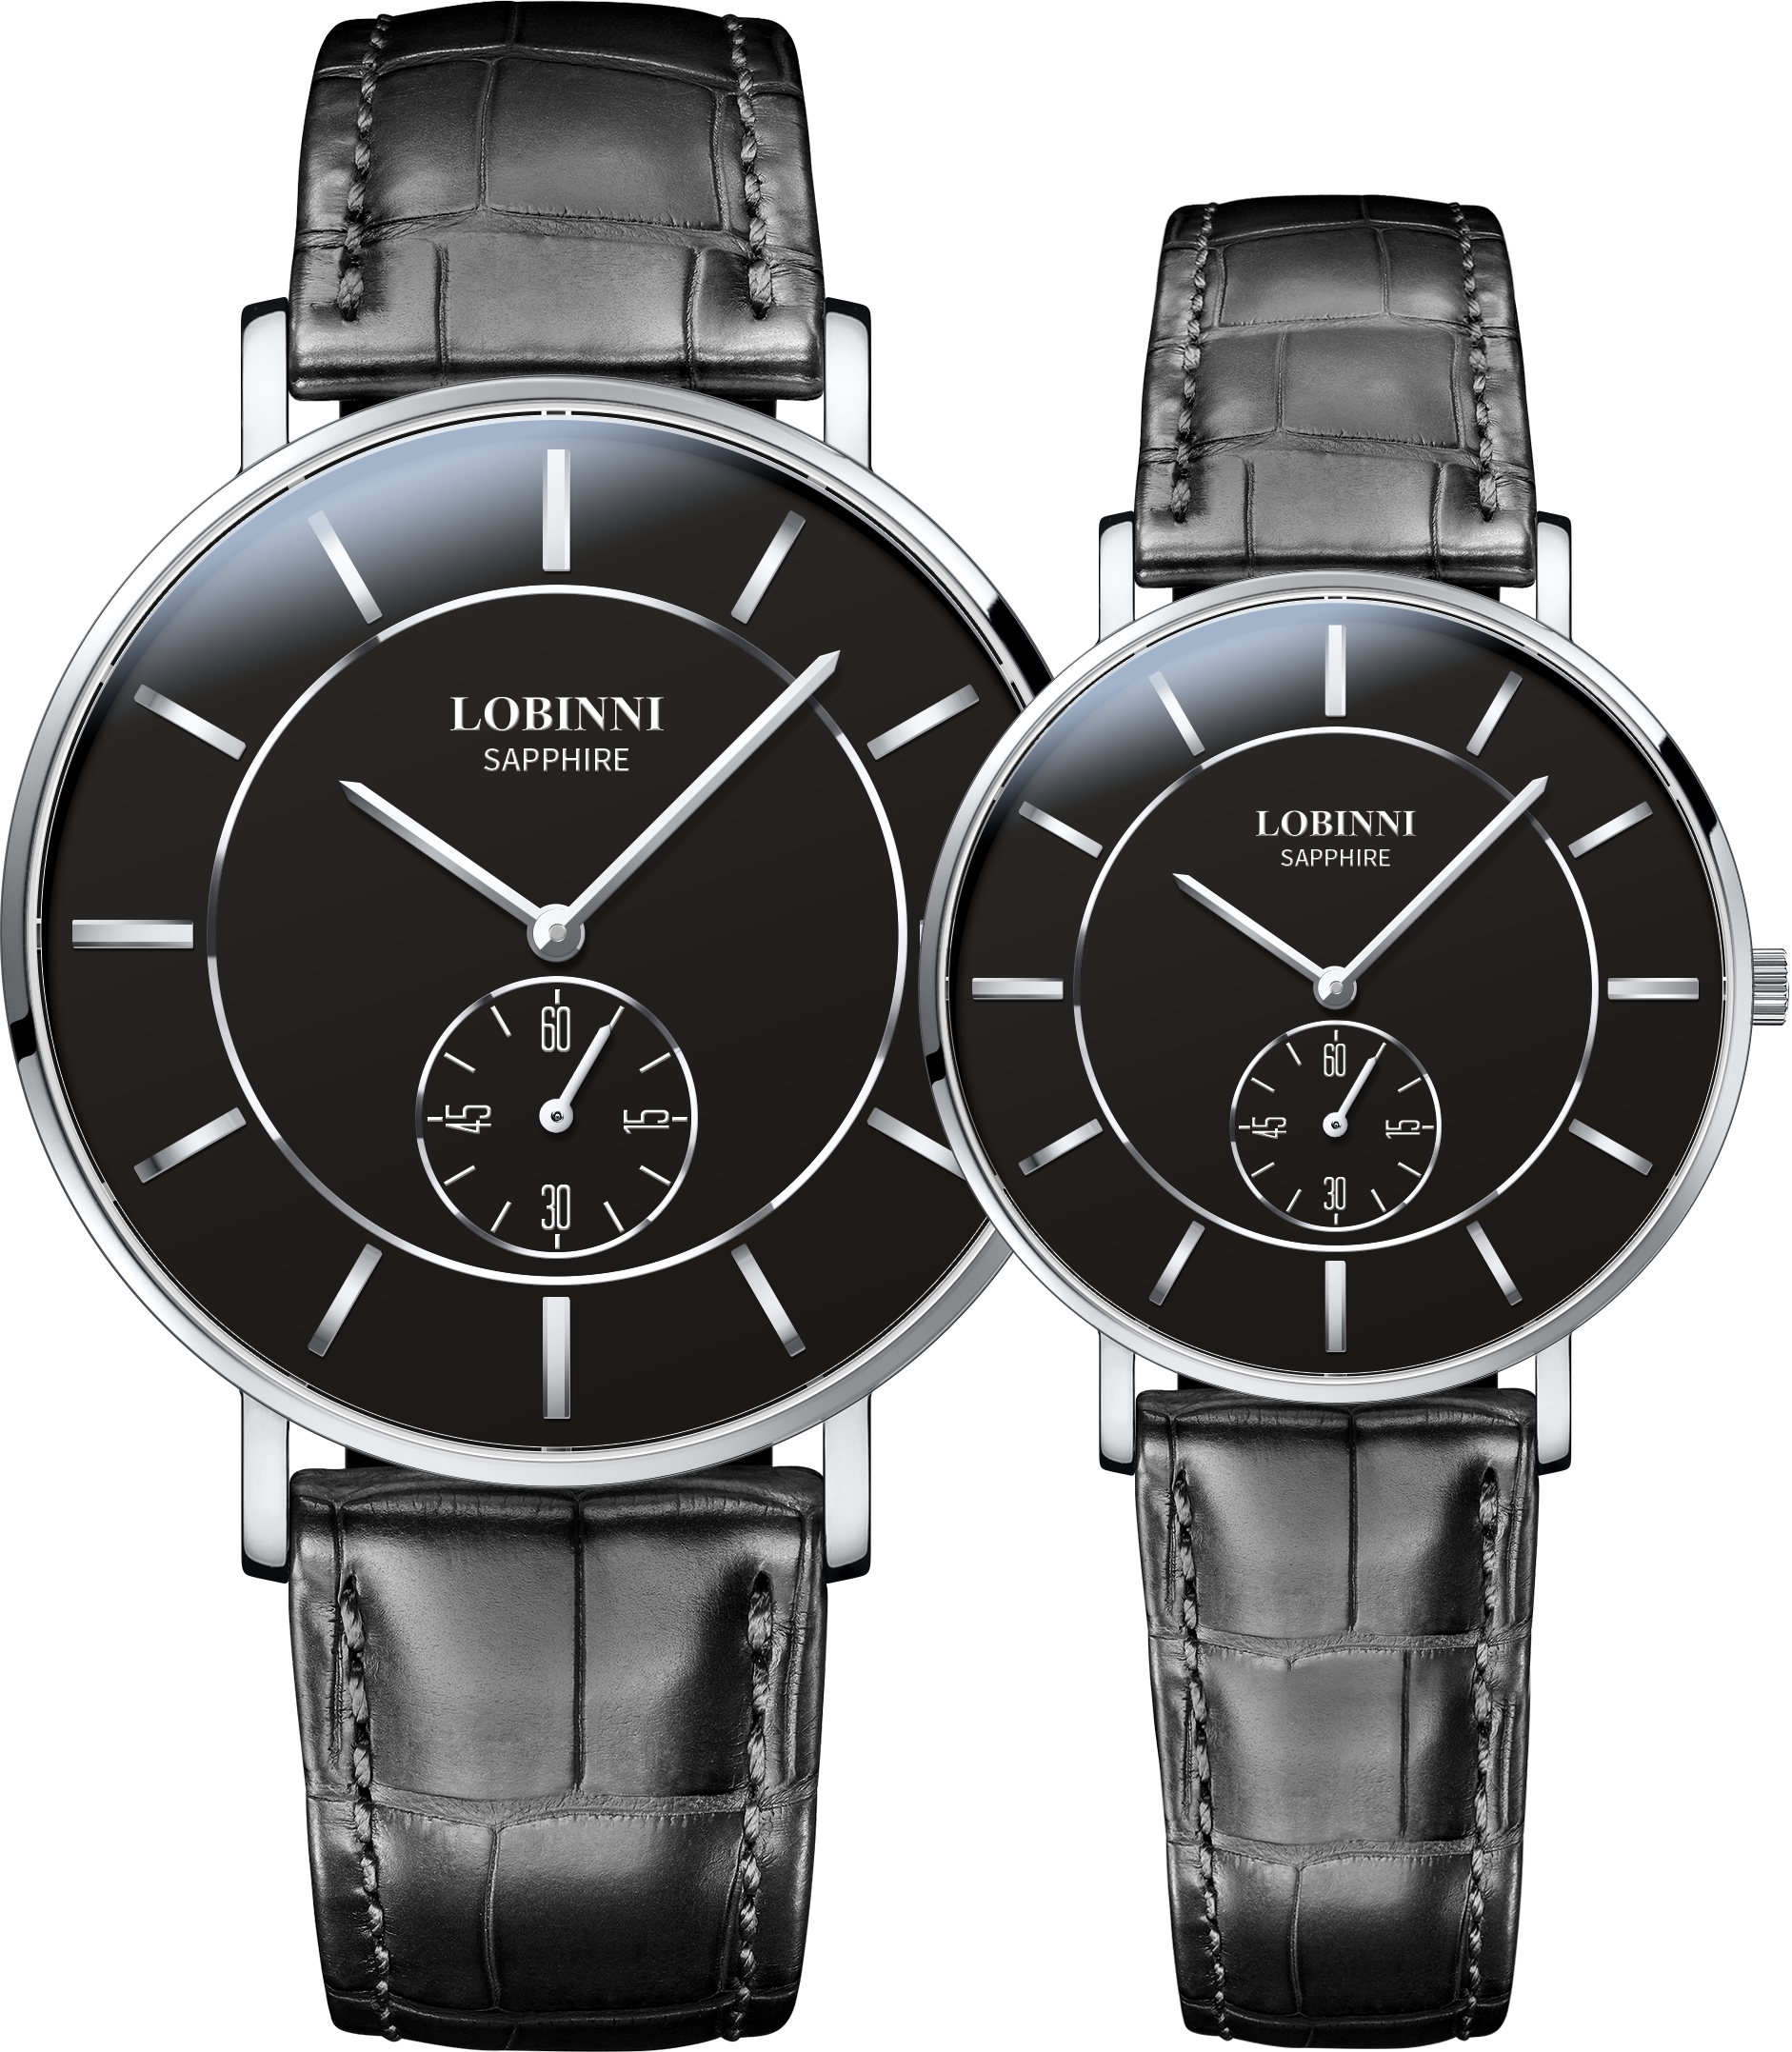 LOBINNI Lovers Watch Switzerland Luxury Brand Quartz Movt Couple Wirstwatches Sapphire Leather Male Female Relogio